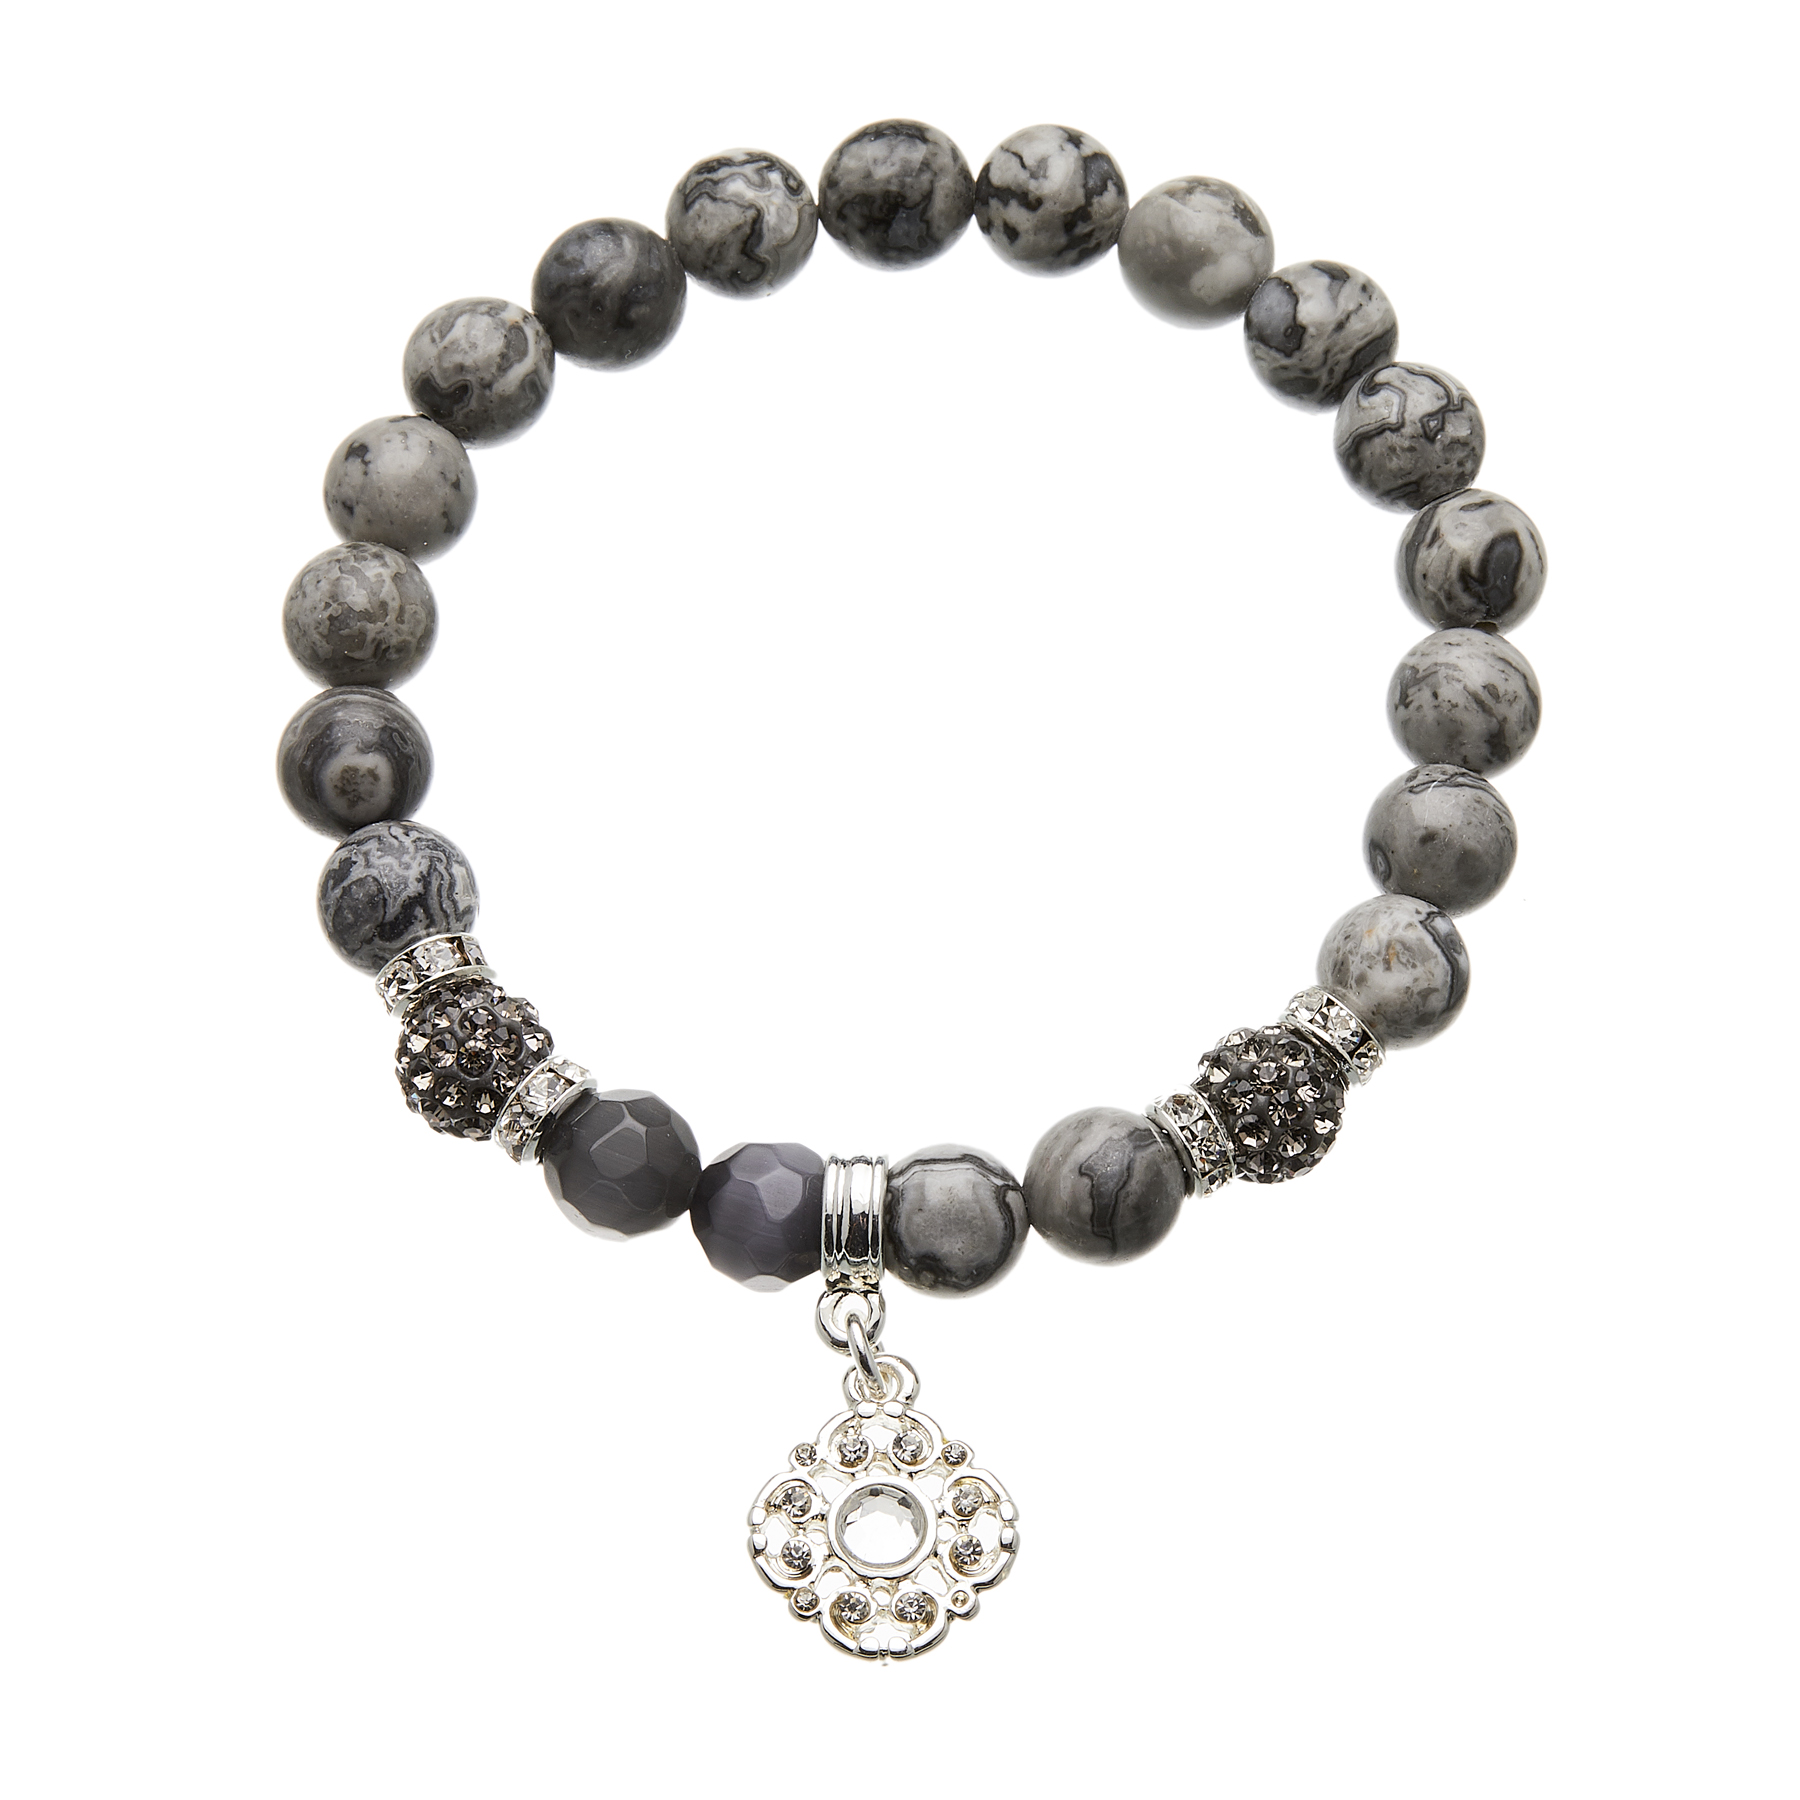 Map grey stone beaded Bracelet with silver charms and crystals - Rae G04